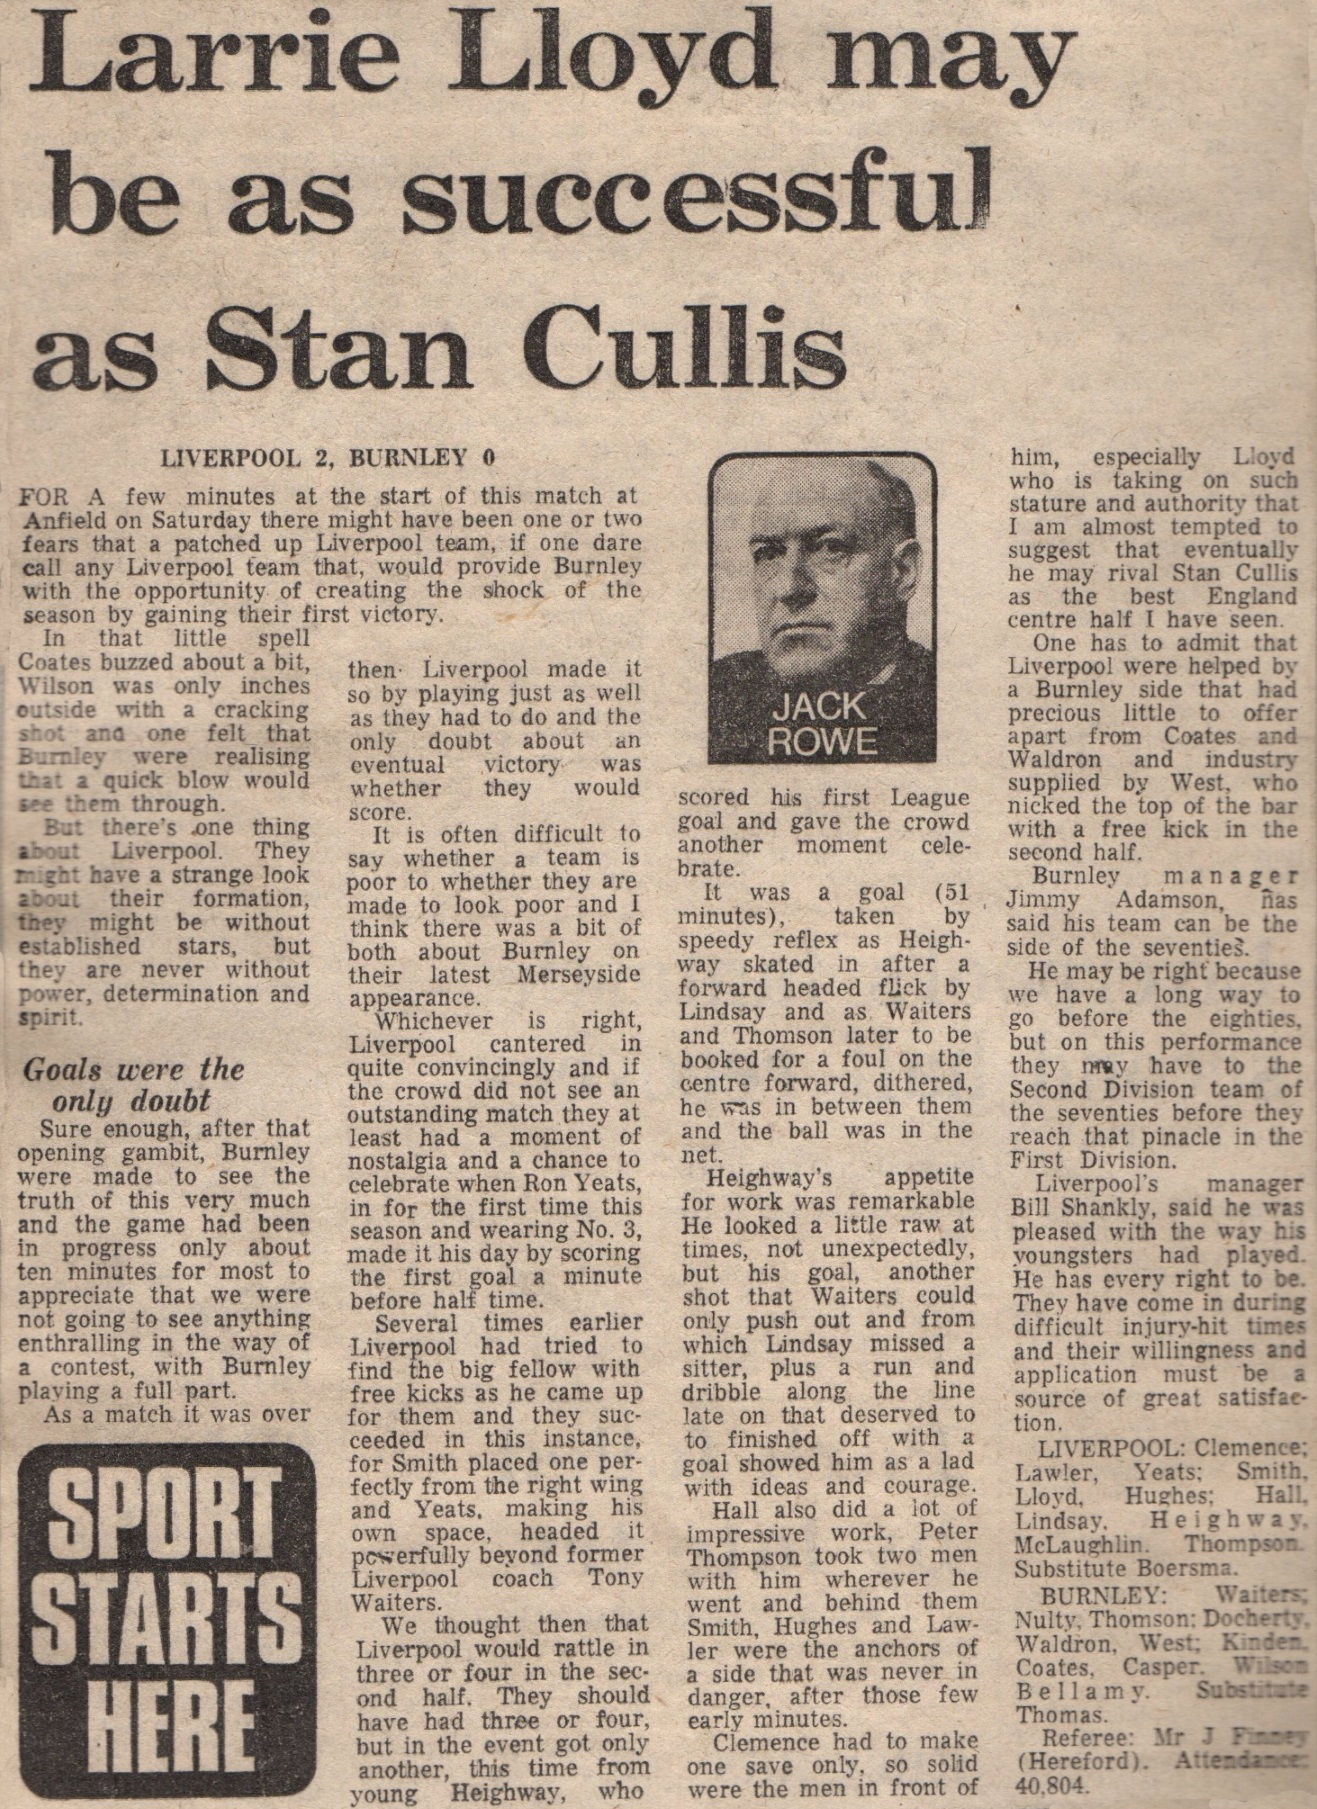 Larry Lloyd may be as successful as Stan Cullis - 17 October 1970